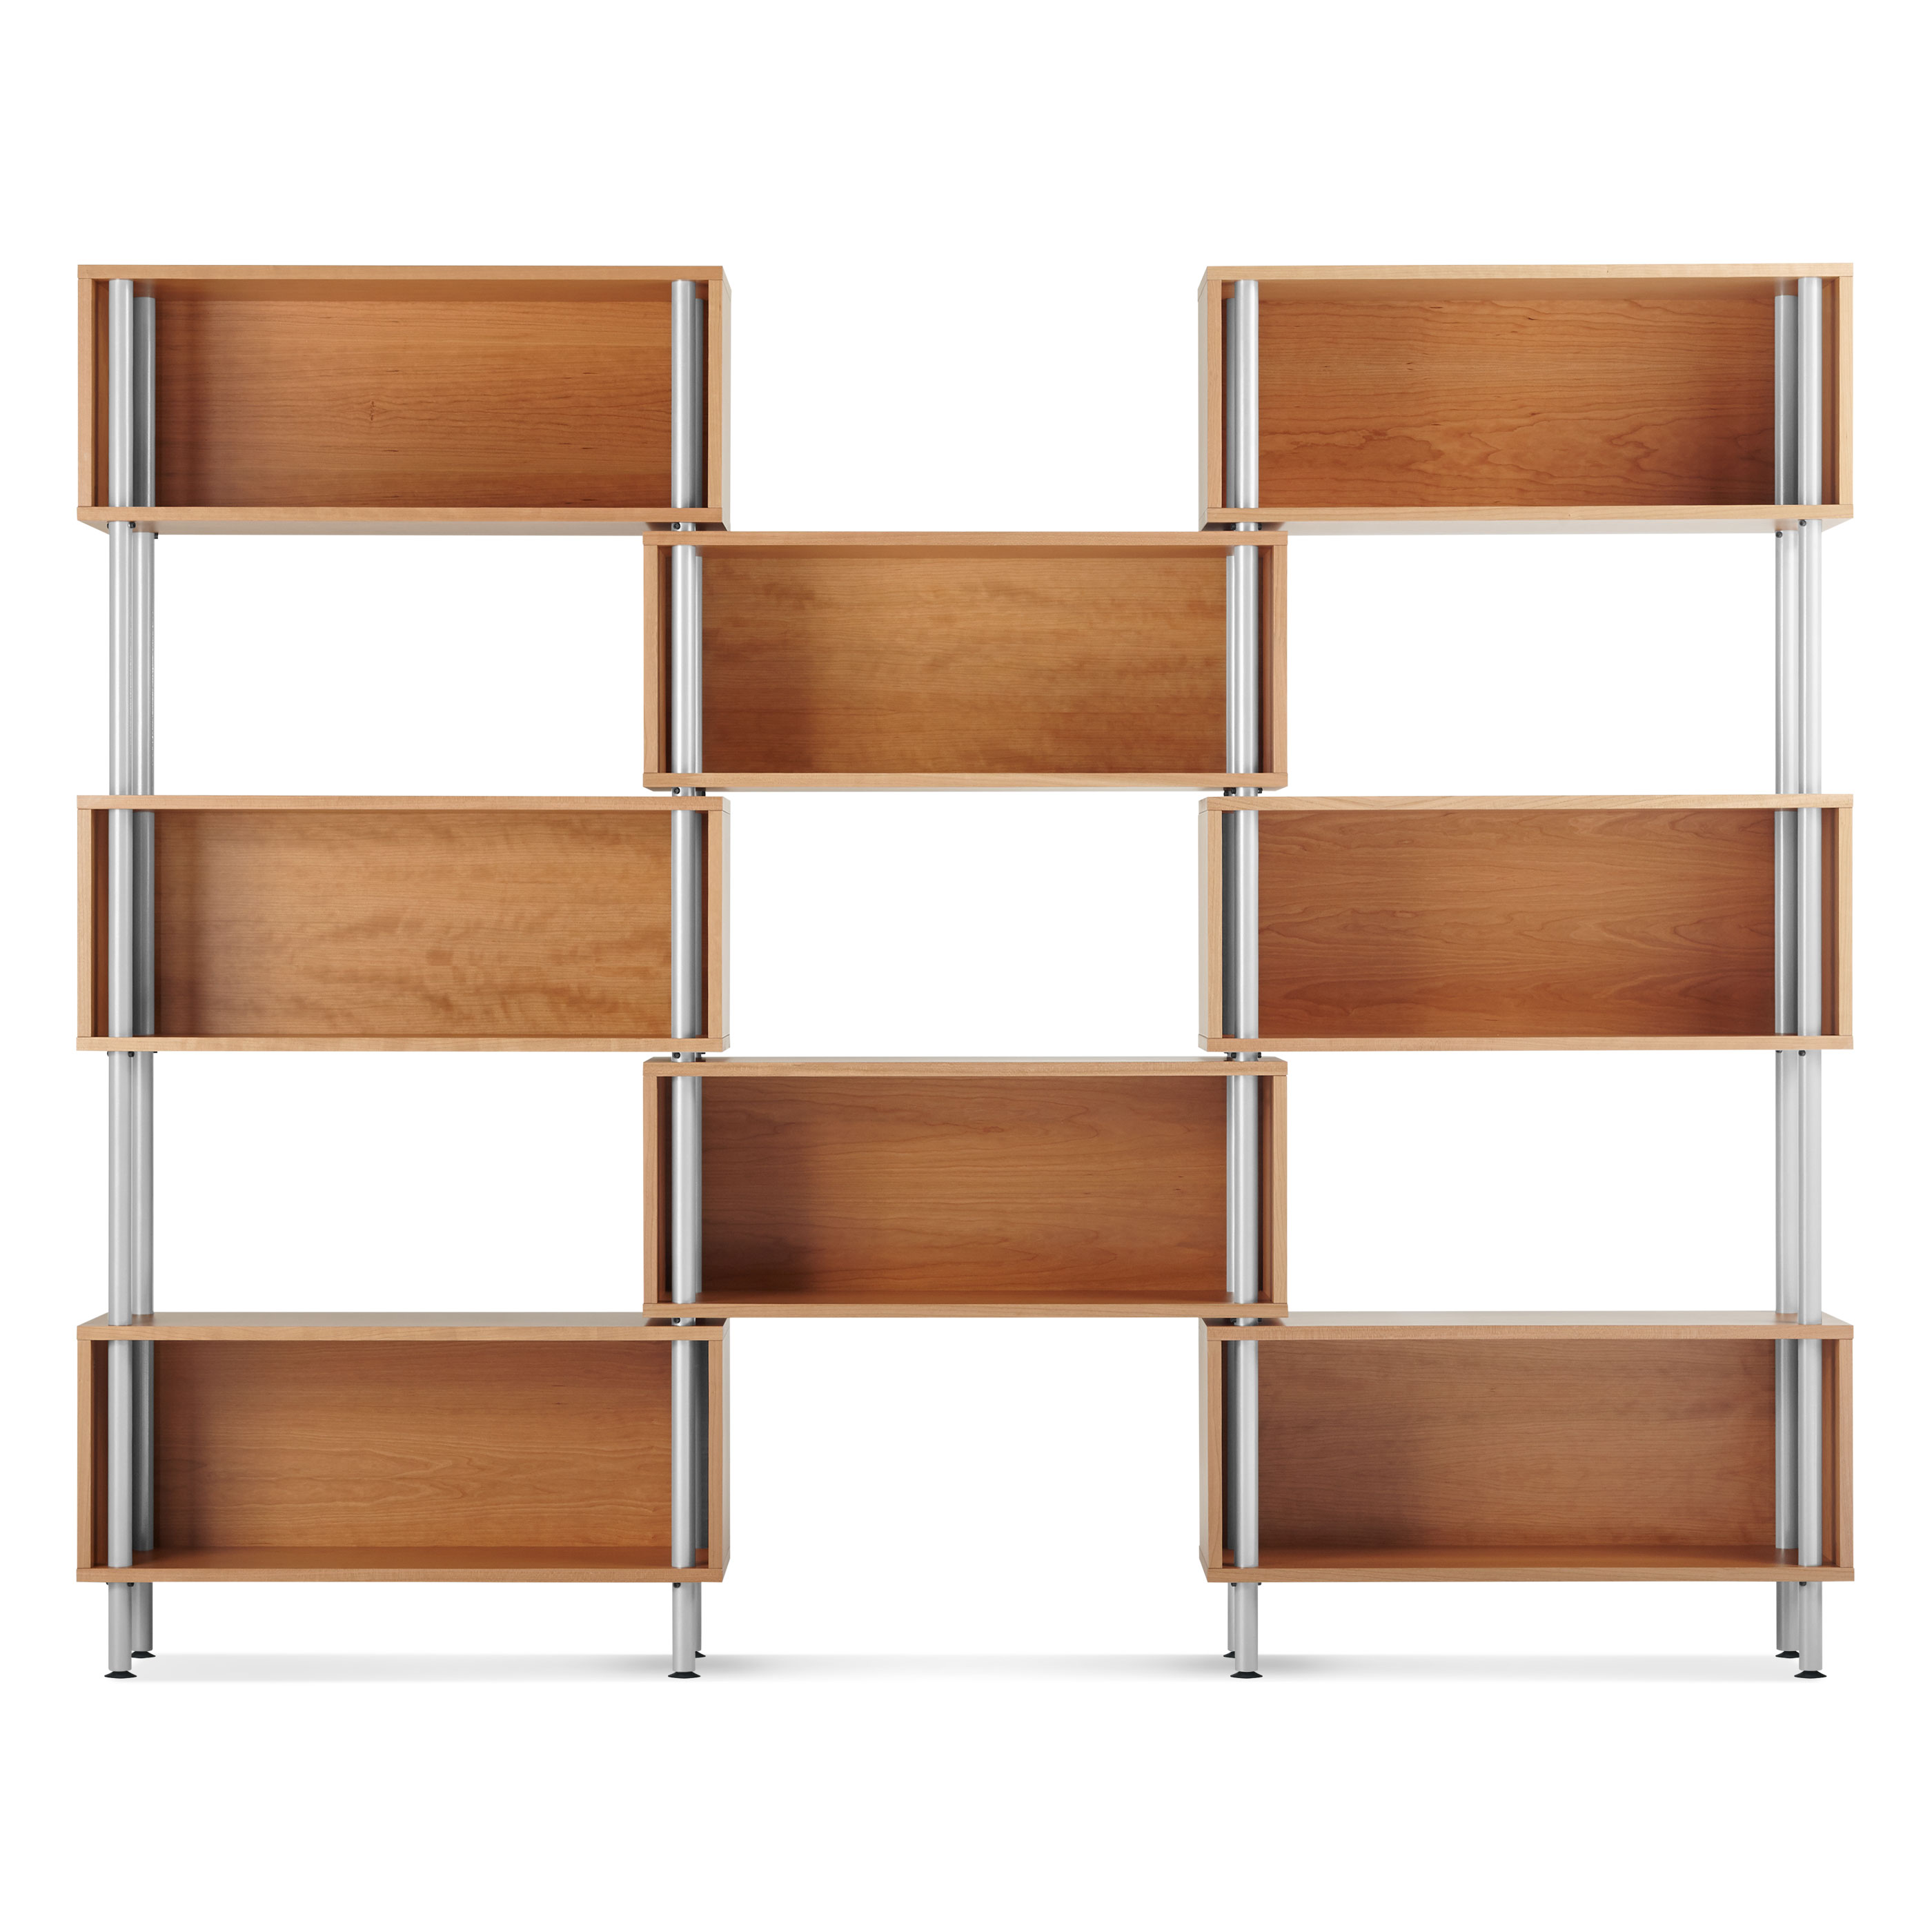 The Chicago 8 Box Shelving Unit Features Eight Floating Wood Boxes Supported By Powder Coated Tubular Steel Legs Shop Modern Units At Blu Dot